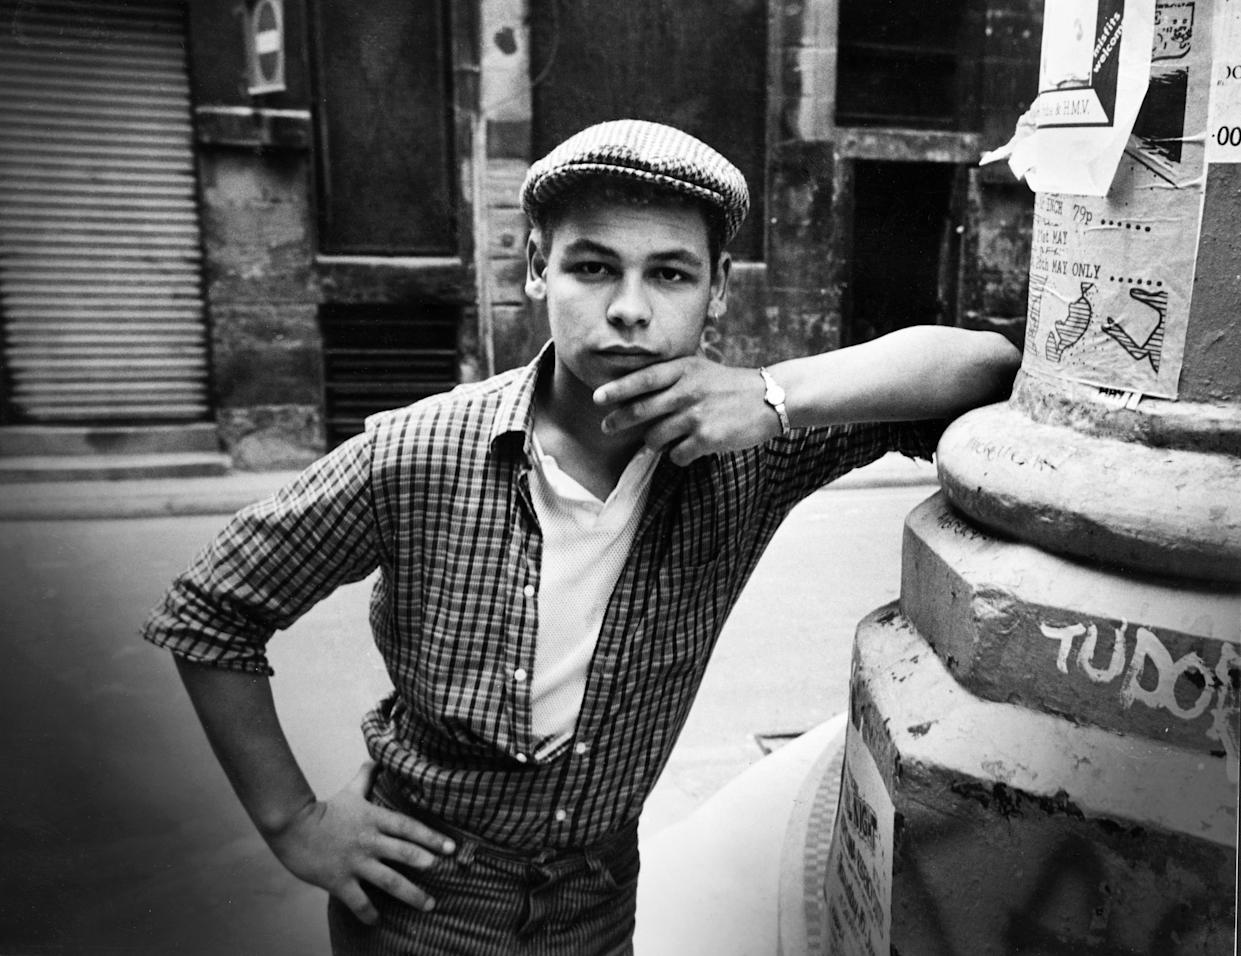 Liverpudlian television actor and comedian Craig Charles poses in his native city of Liverpool. 14th March 1985. (Photo by Stephen Shakeshaft/Liverpool Echo/MirrorpixGetty Images)